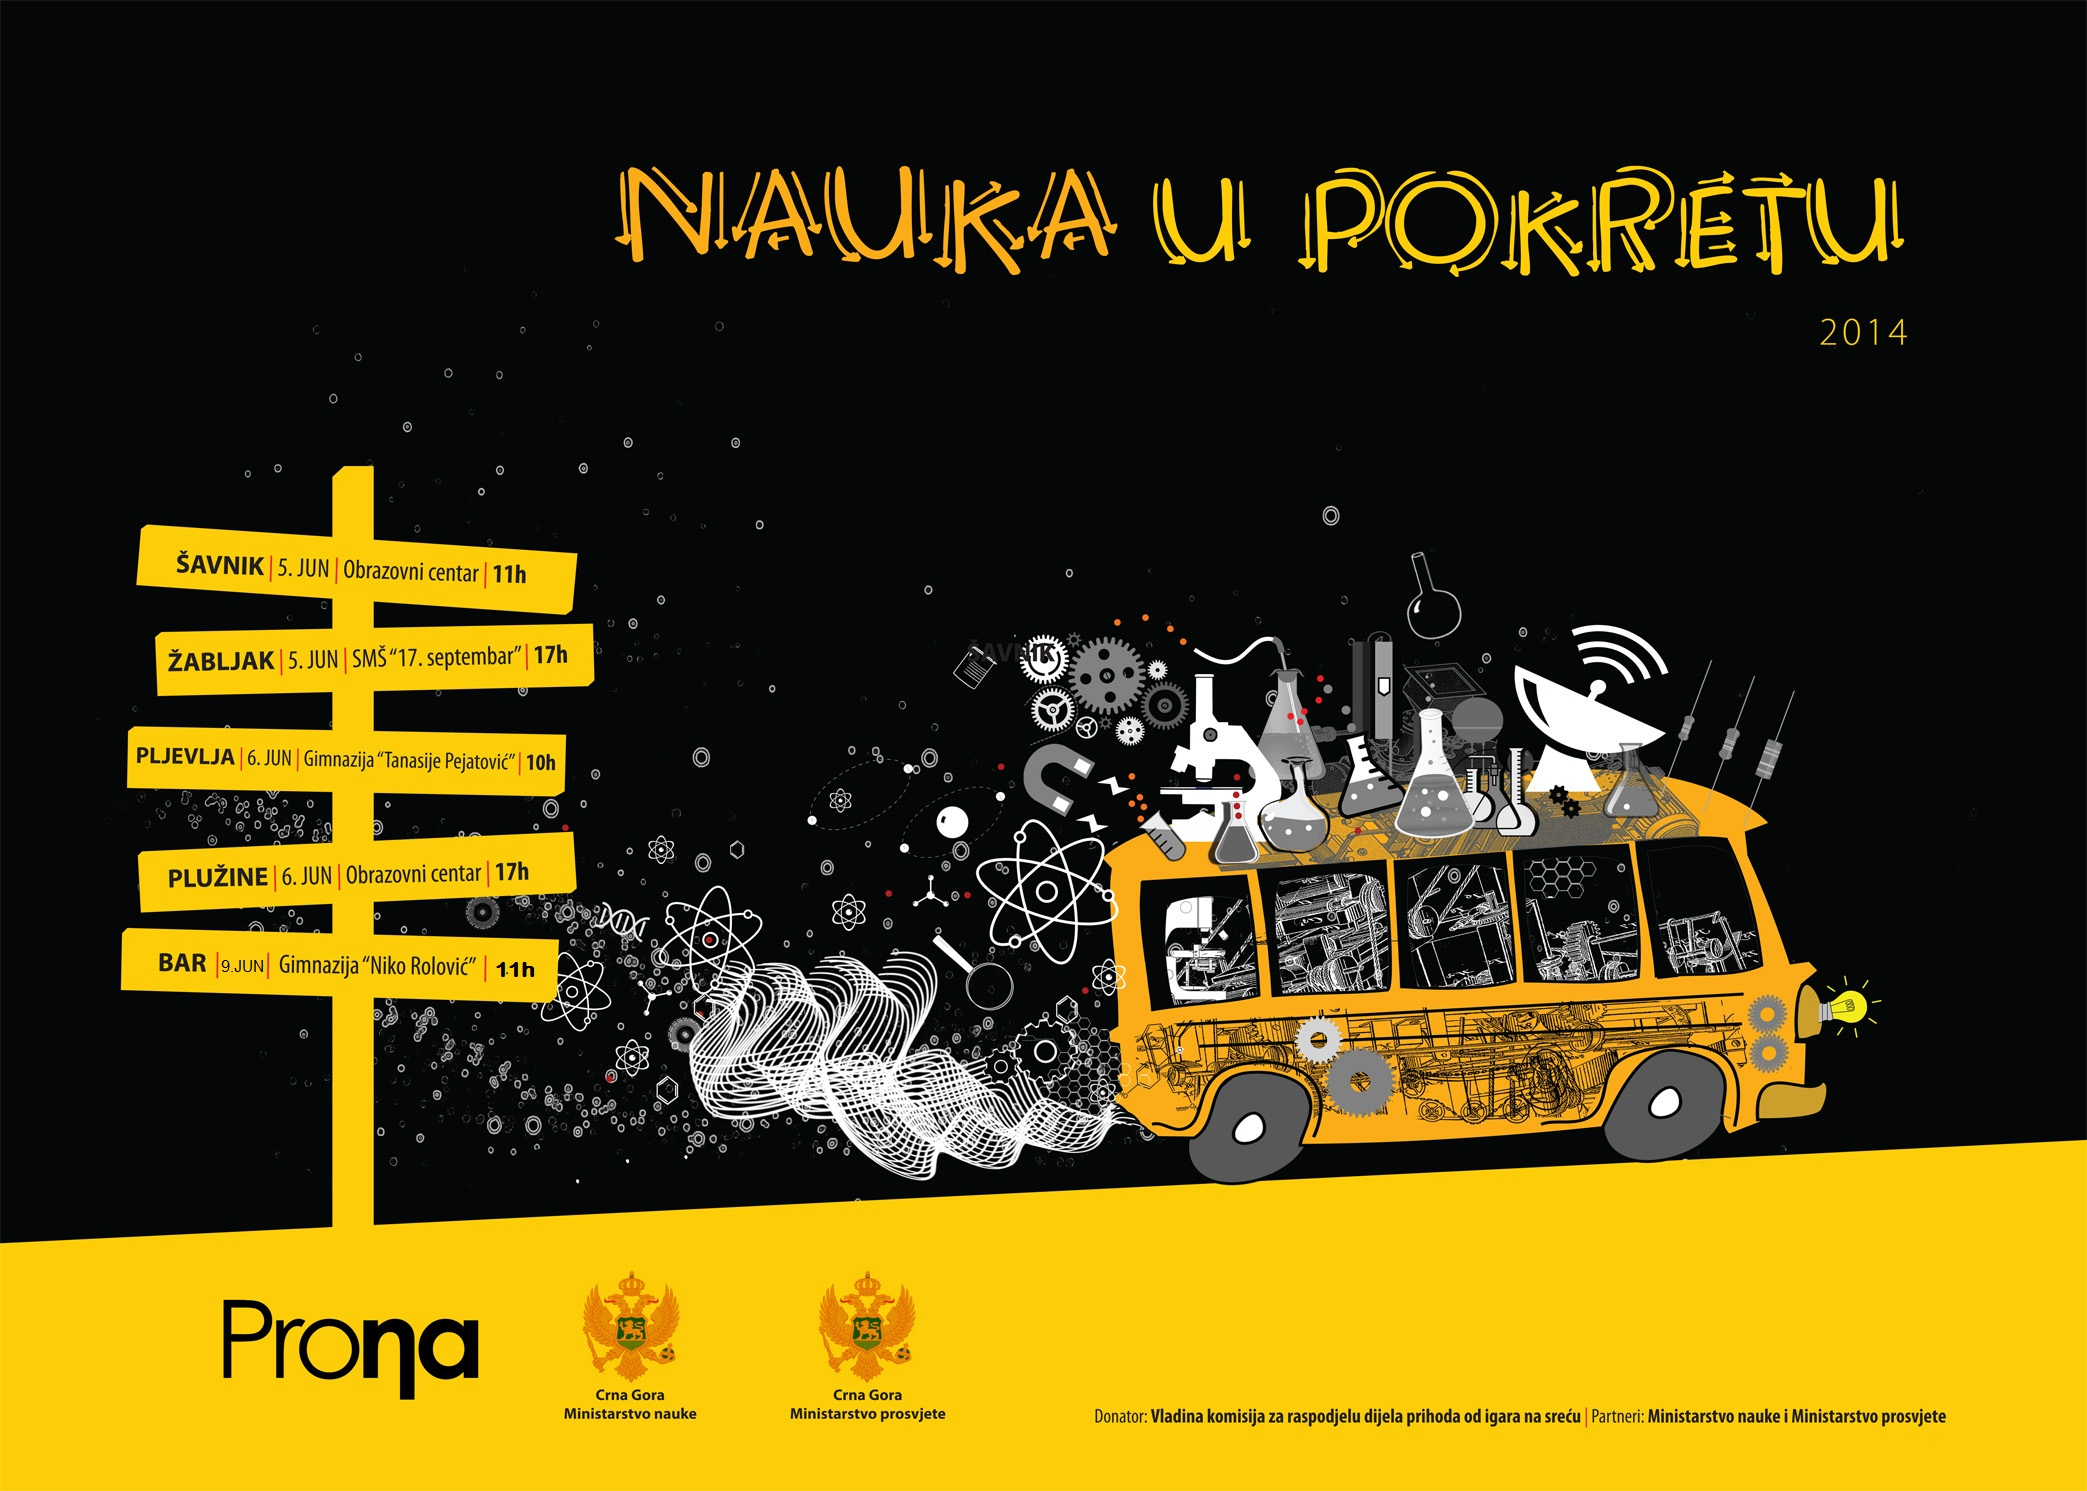 NAUKA U POKRETU 2014plakat press